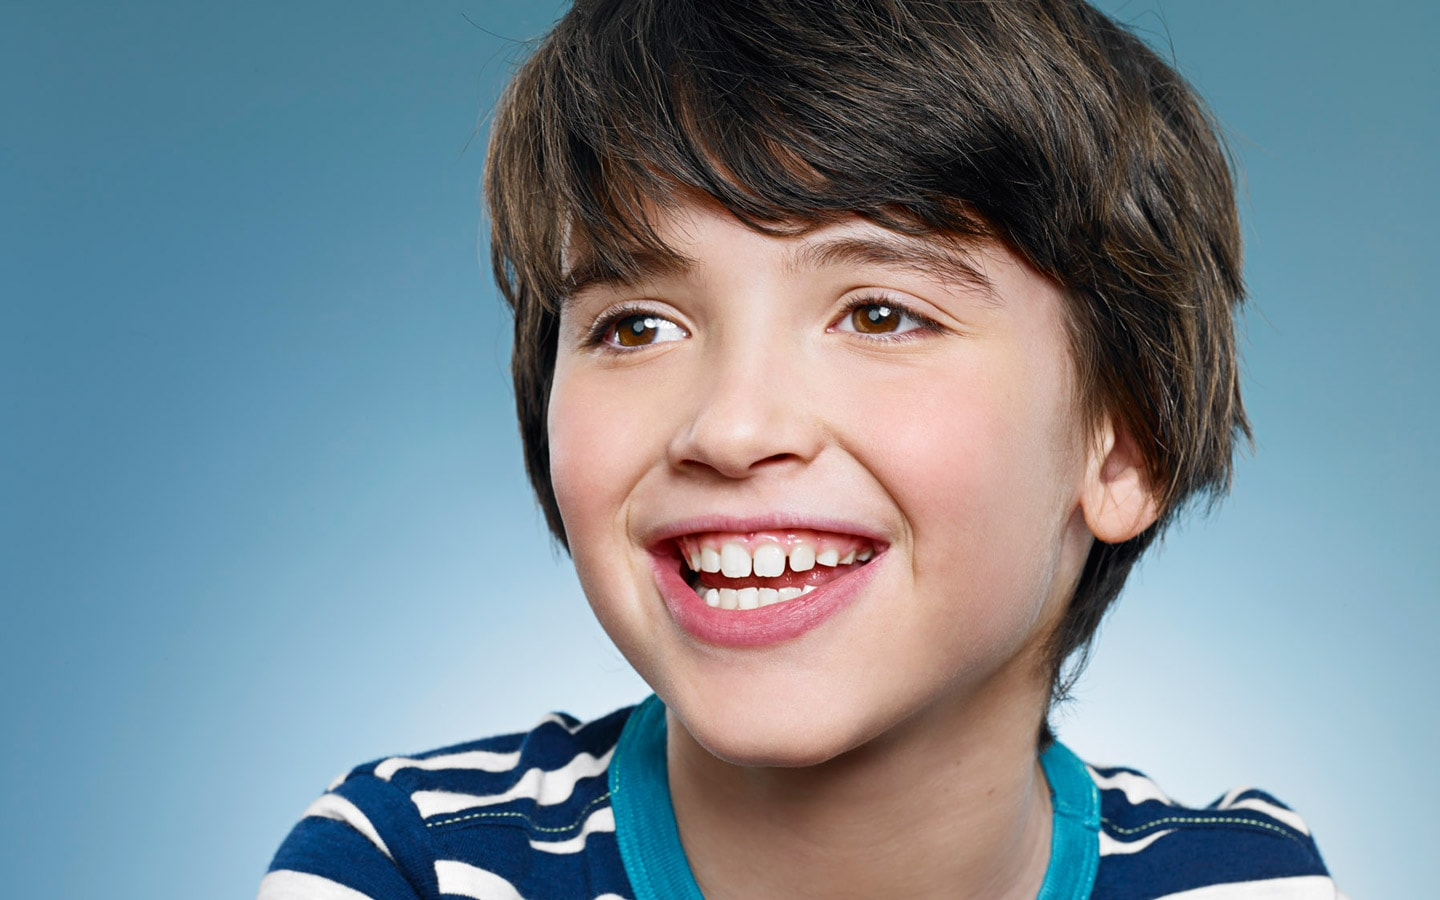 A smiling boy is ready for Sanoudos Kapakian orthodontic braces treatment to straighten his teeth